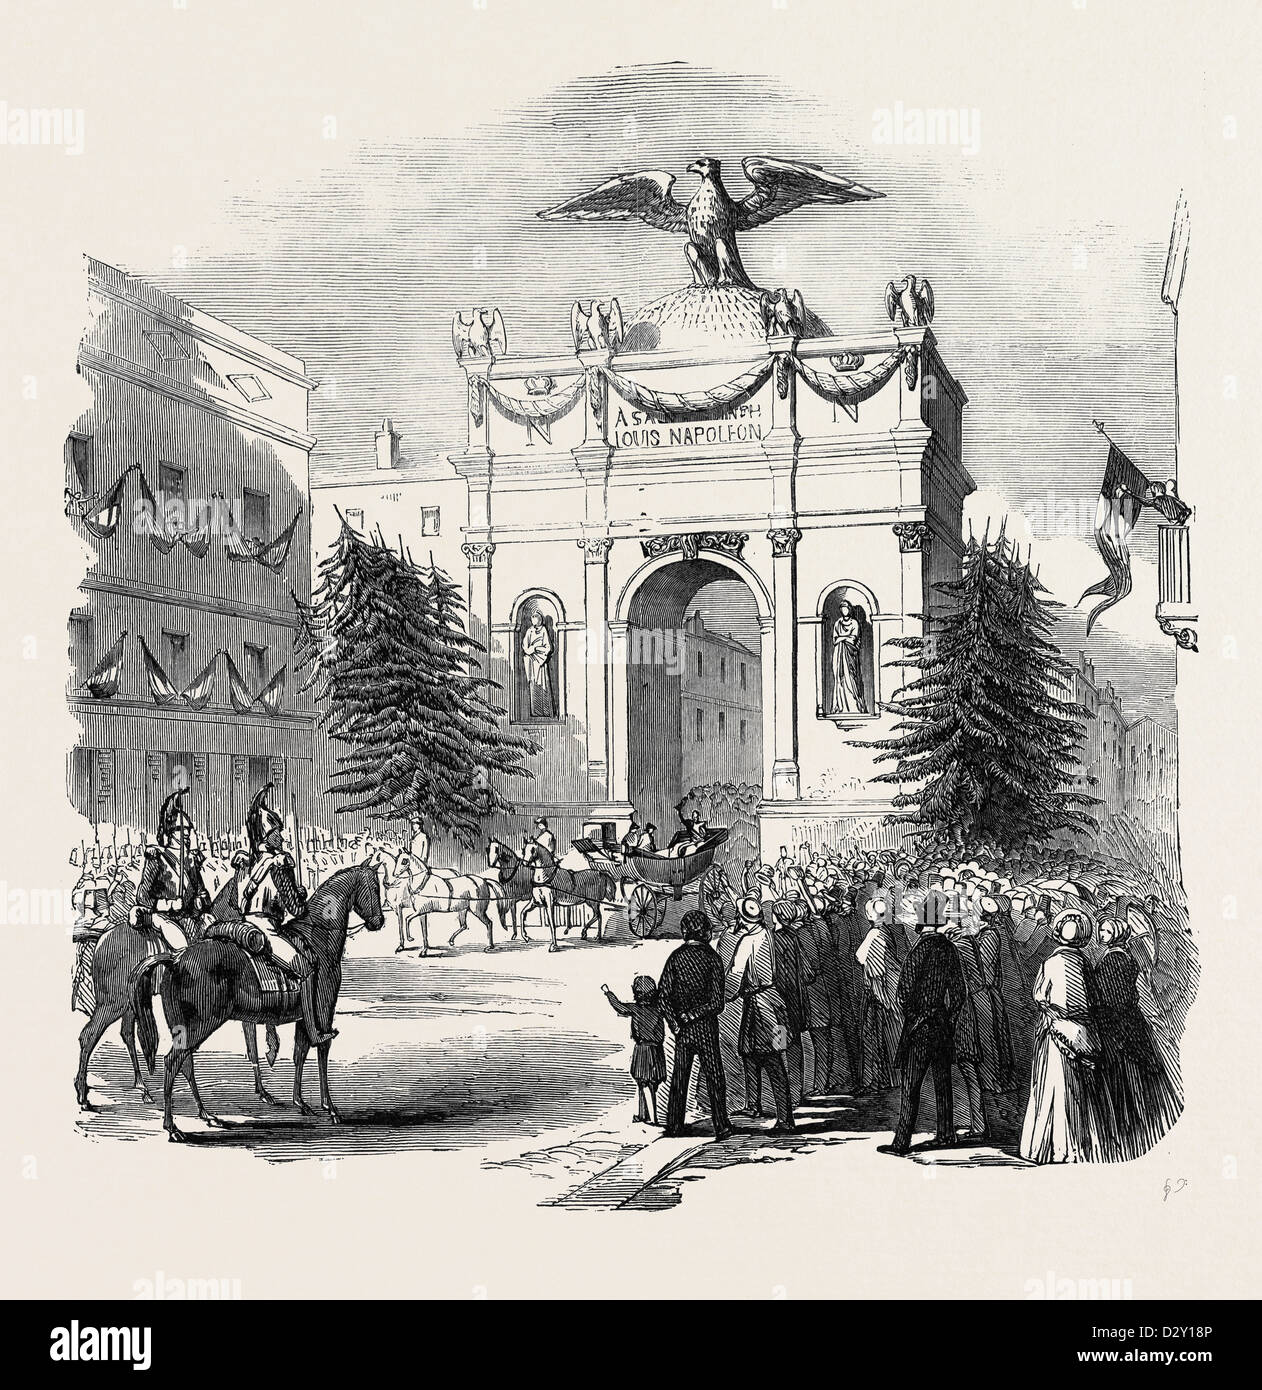 ARRIVAL OF THE PRESIDENT OF FRANCE AT THE TRIUMPHAL ARCH, AT ST. ETIENNE, 1852 - Stock Image